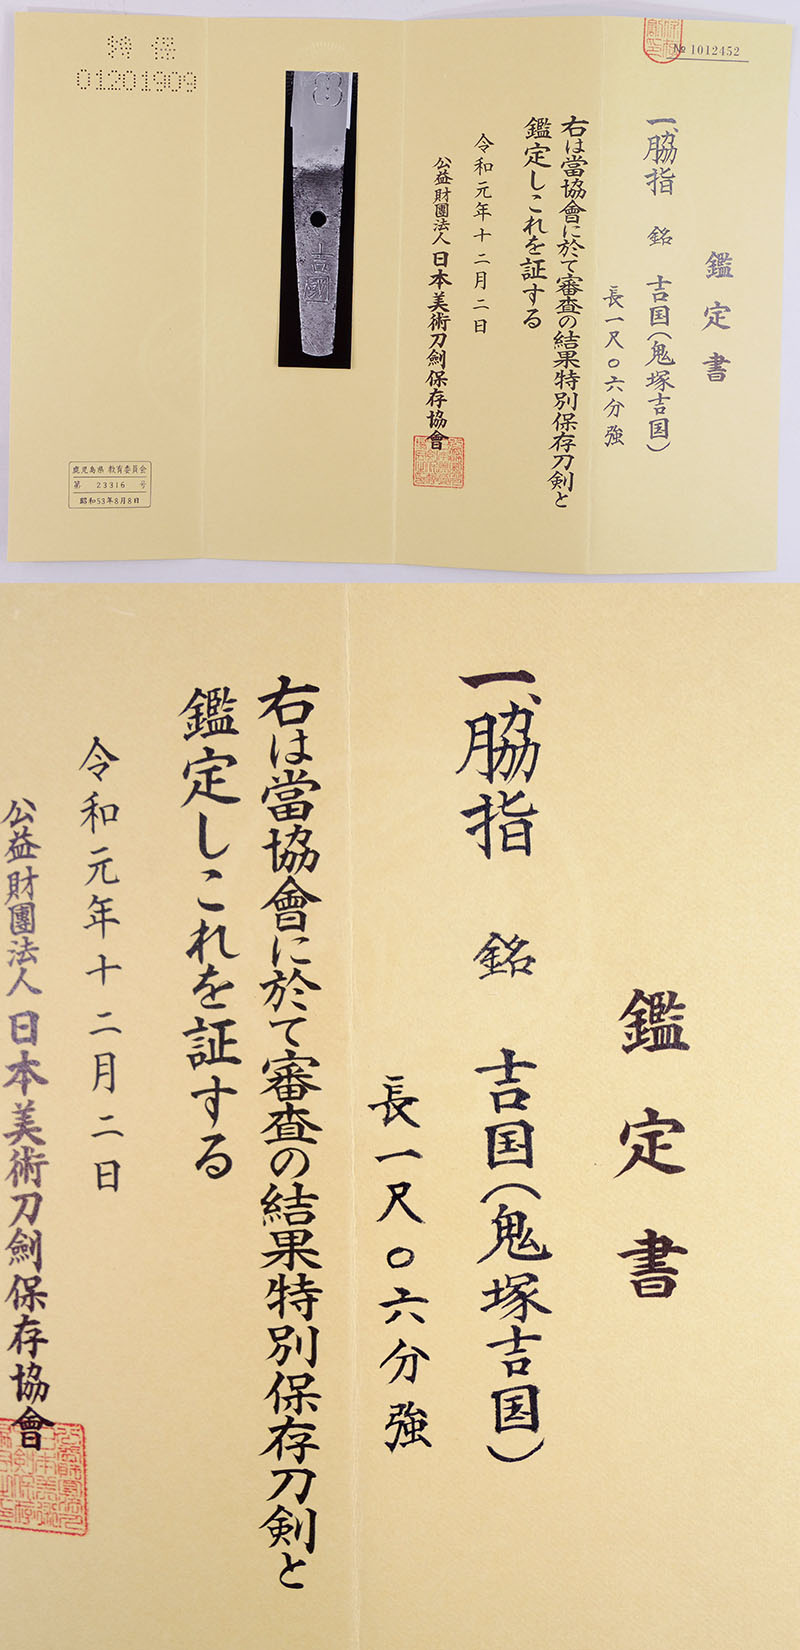 吉国(鬼塚吉国) Picture of Certificate